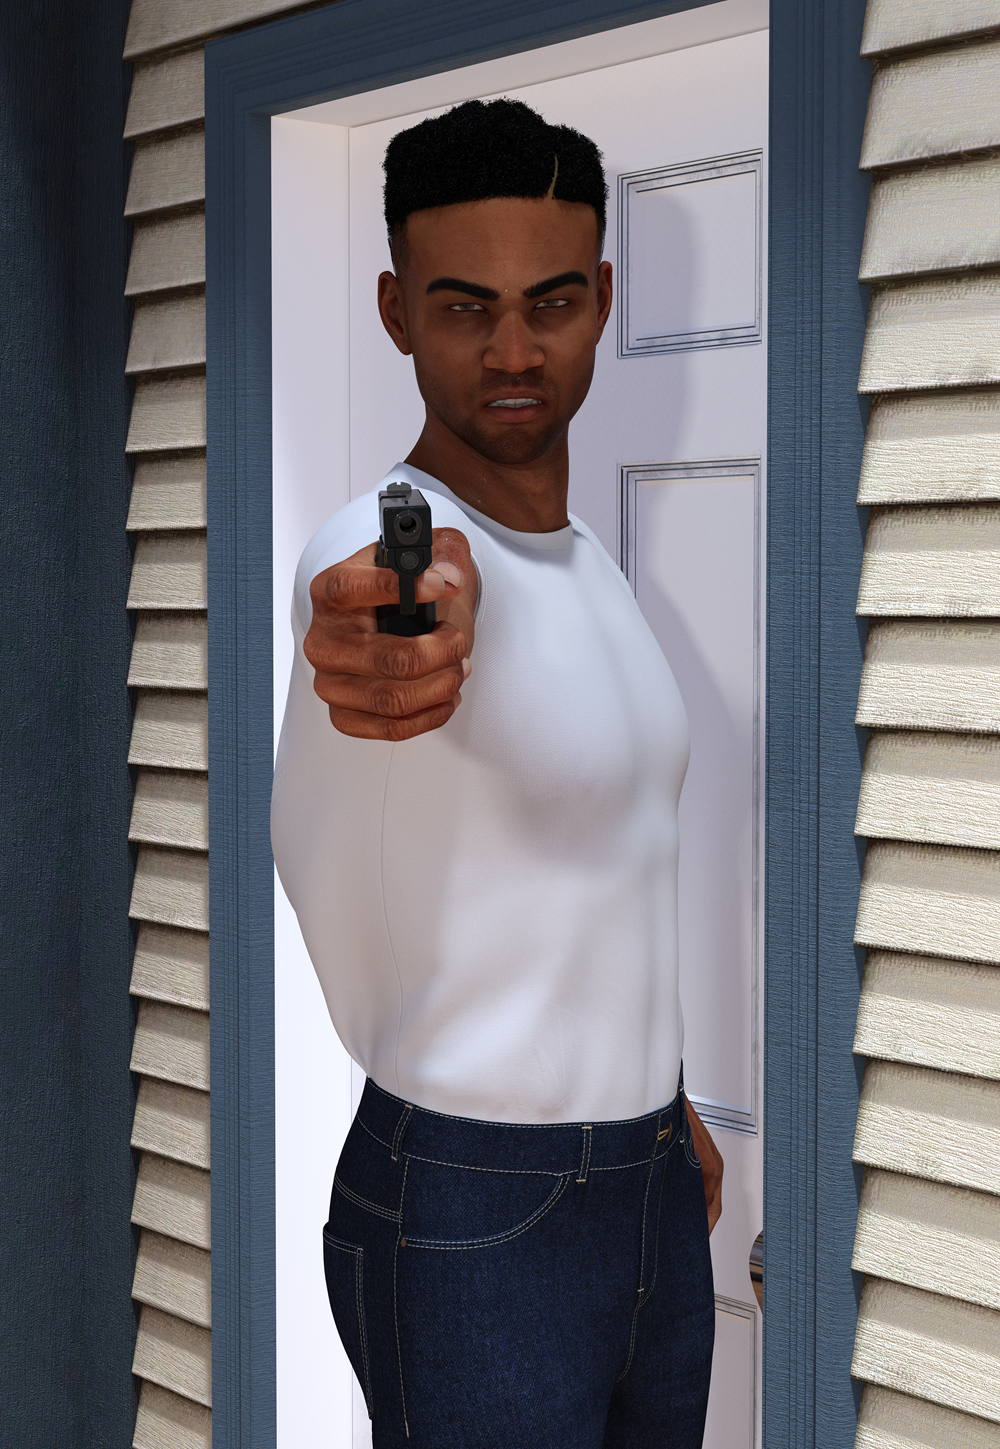 Young Black Male Shooter Target